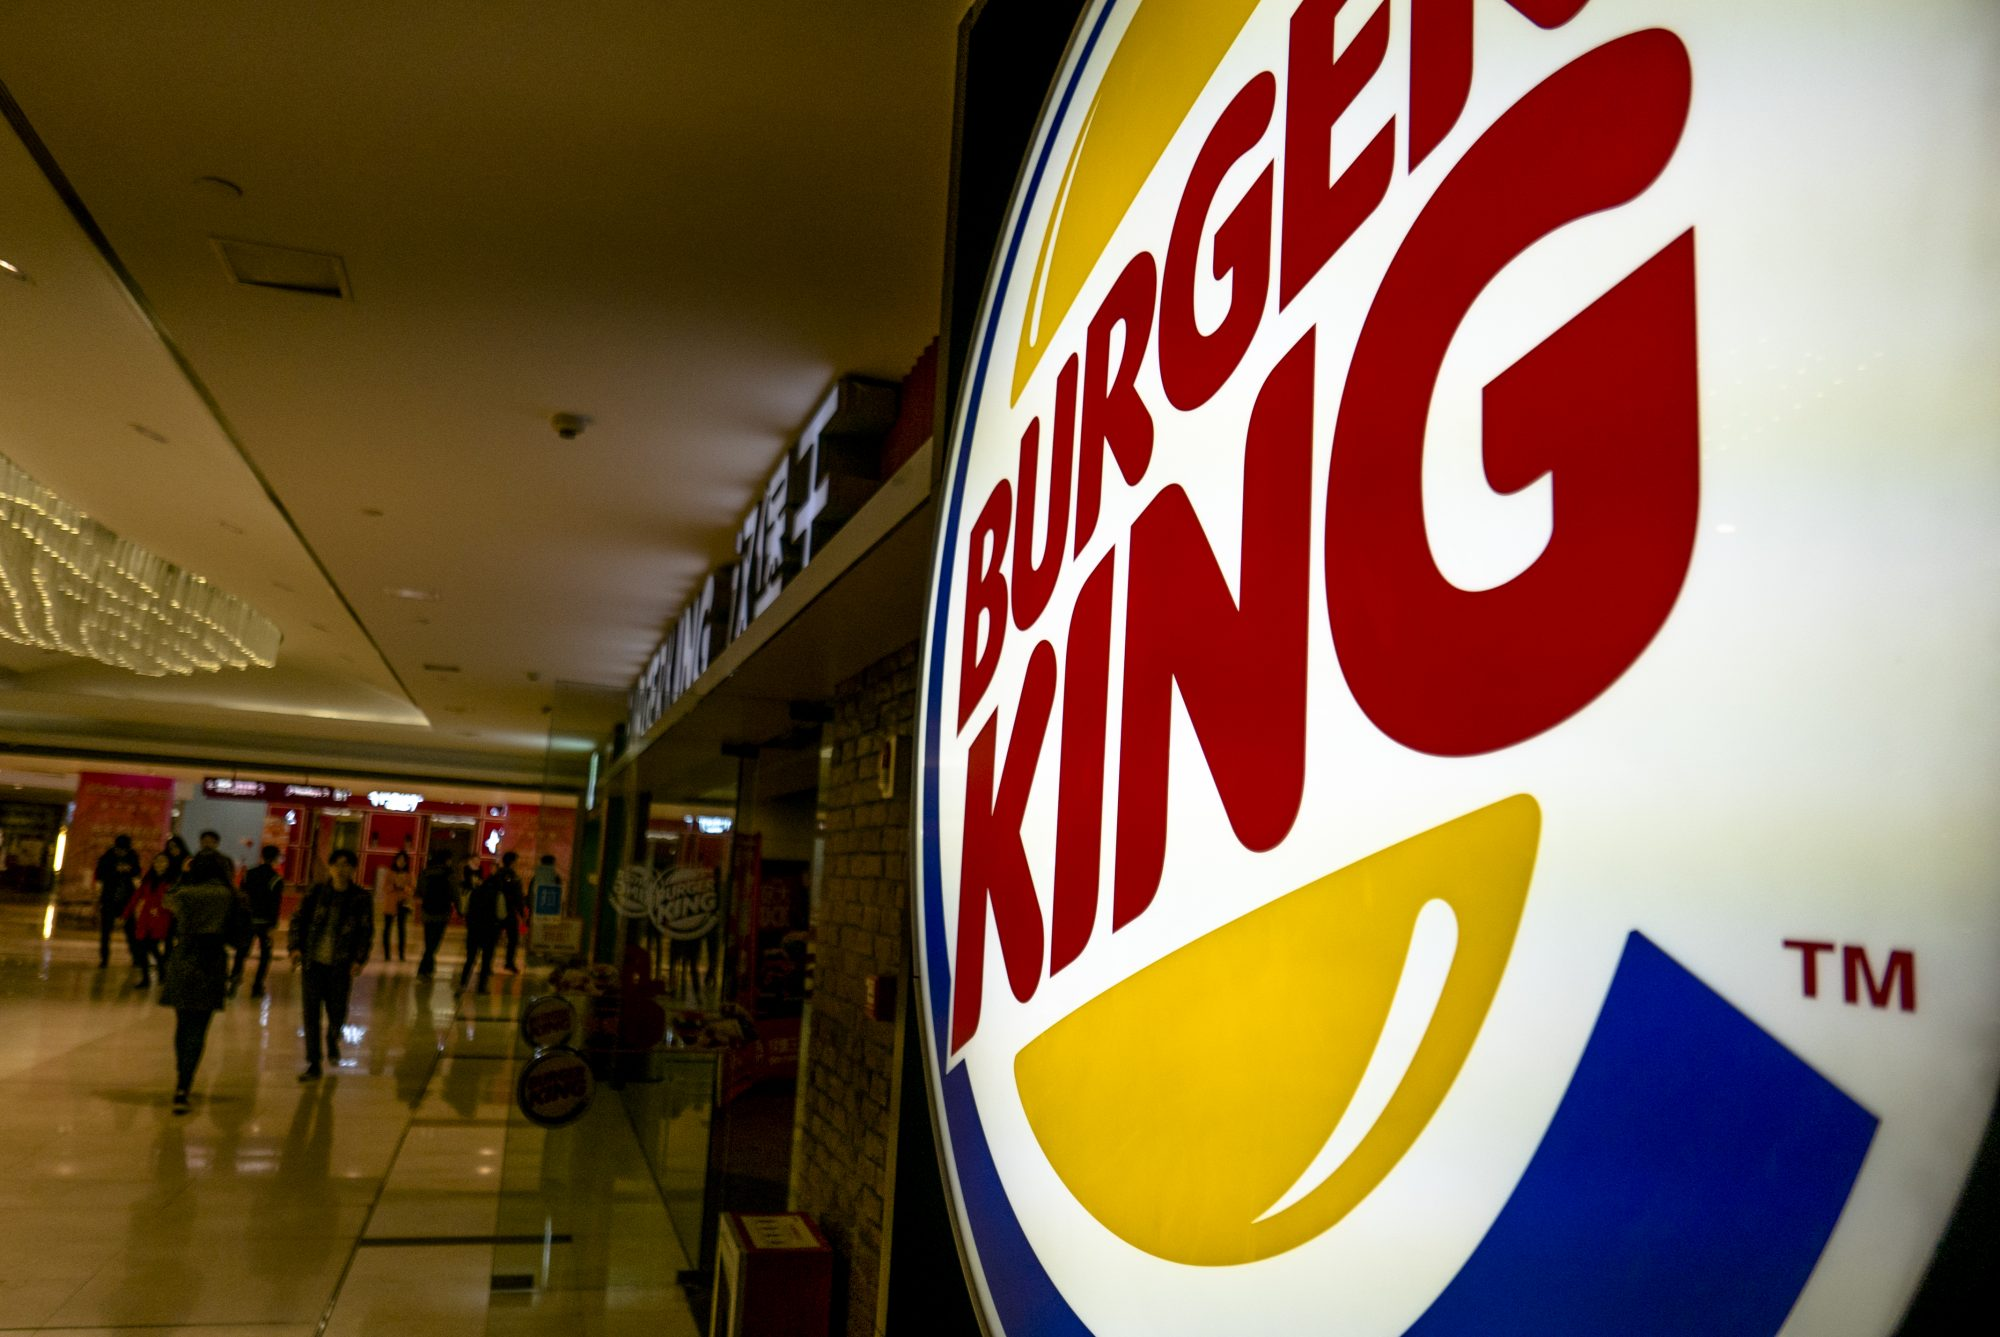 Lightbox logo of Burger King in a shopping mall.  While